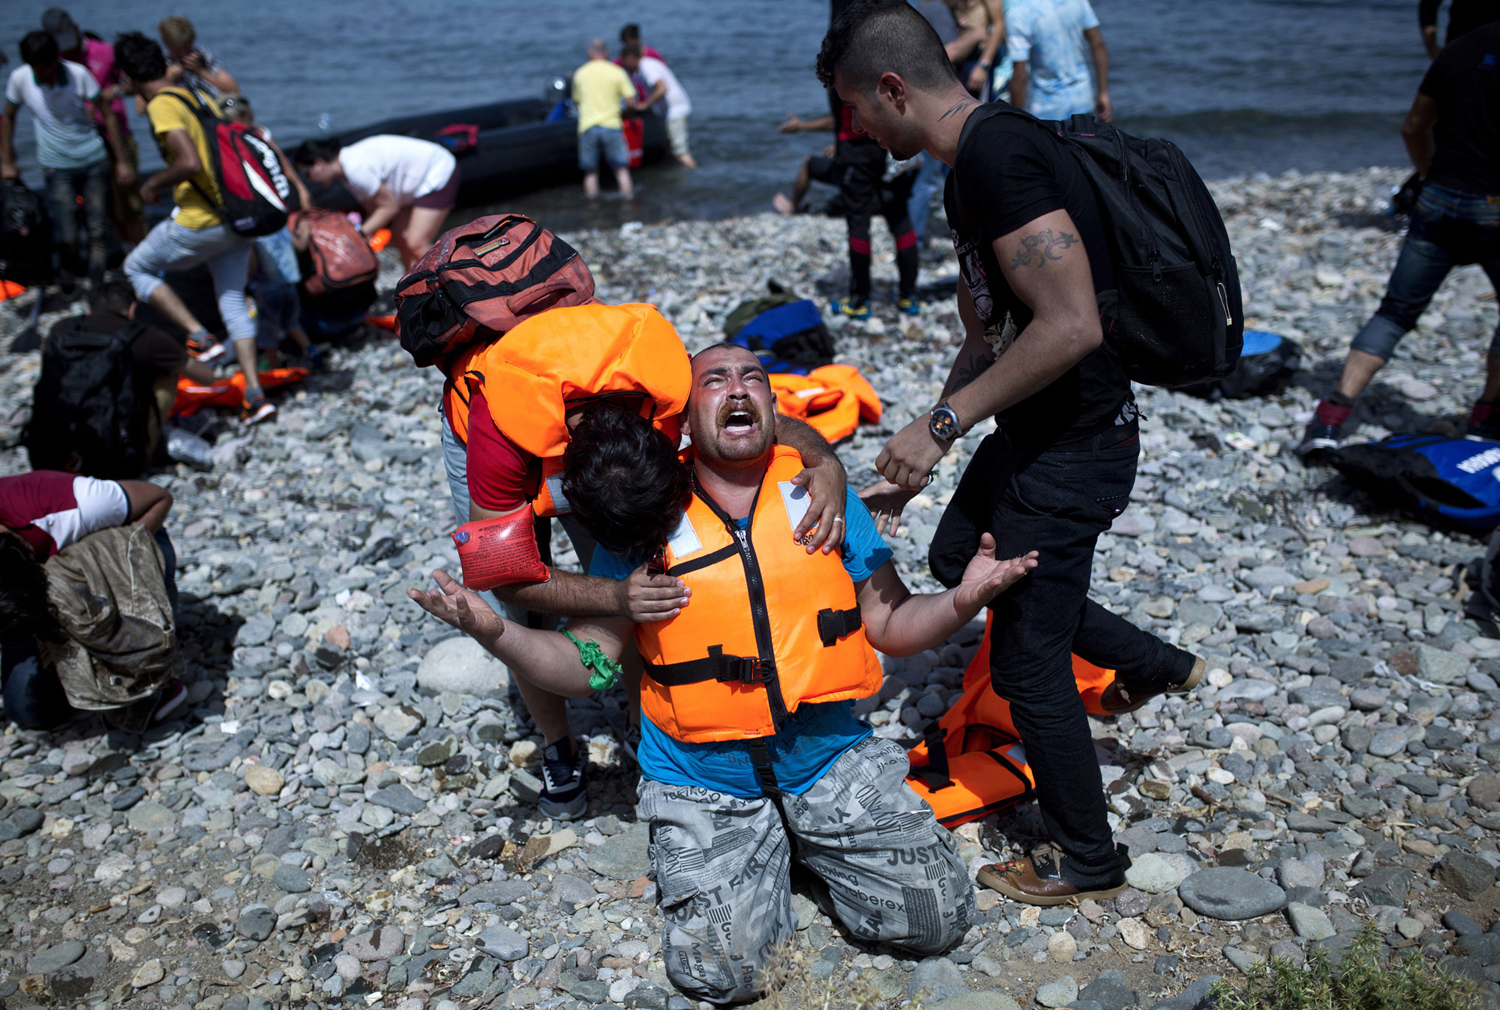 The path of migrants in Europe 01